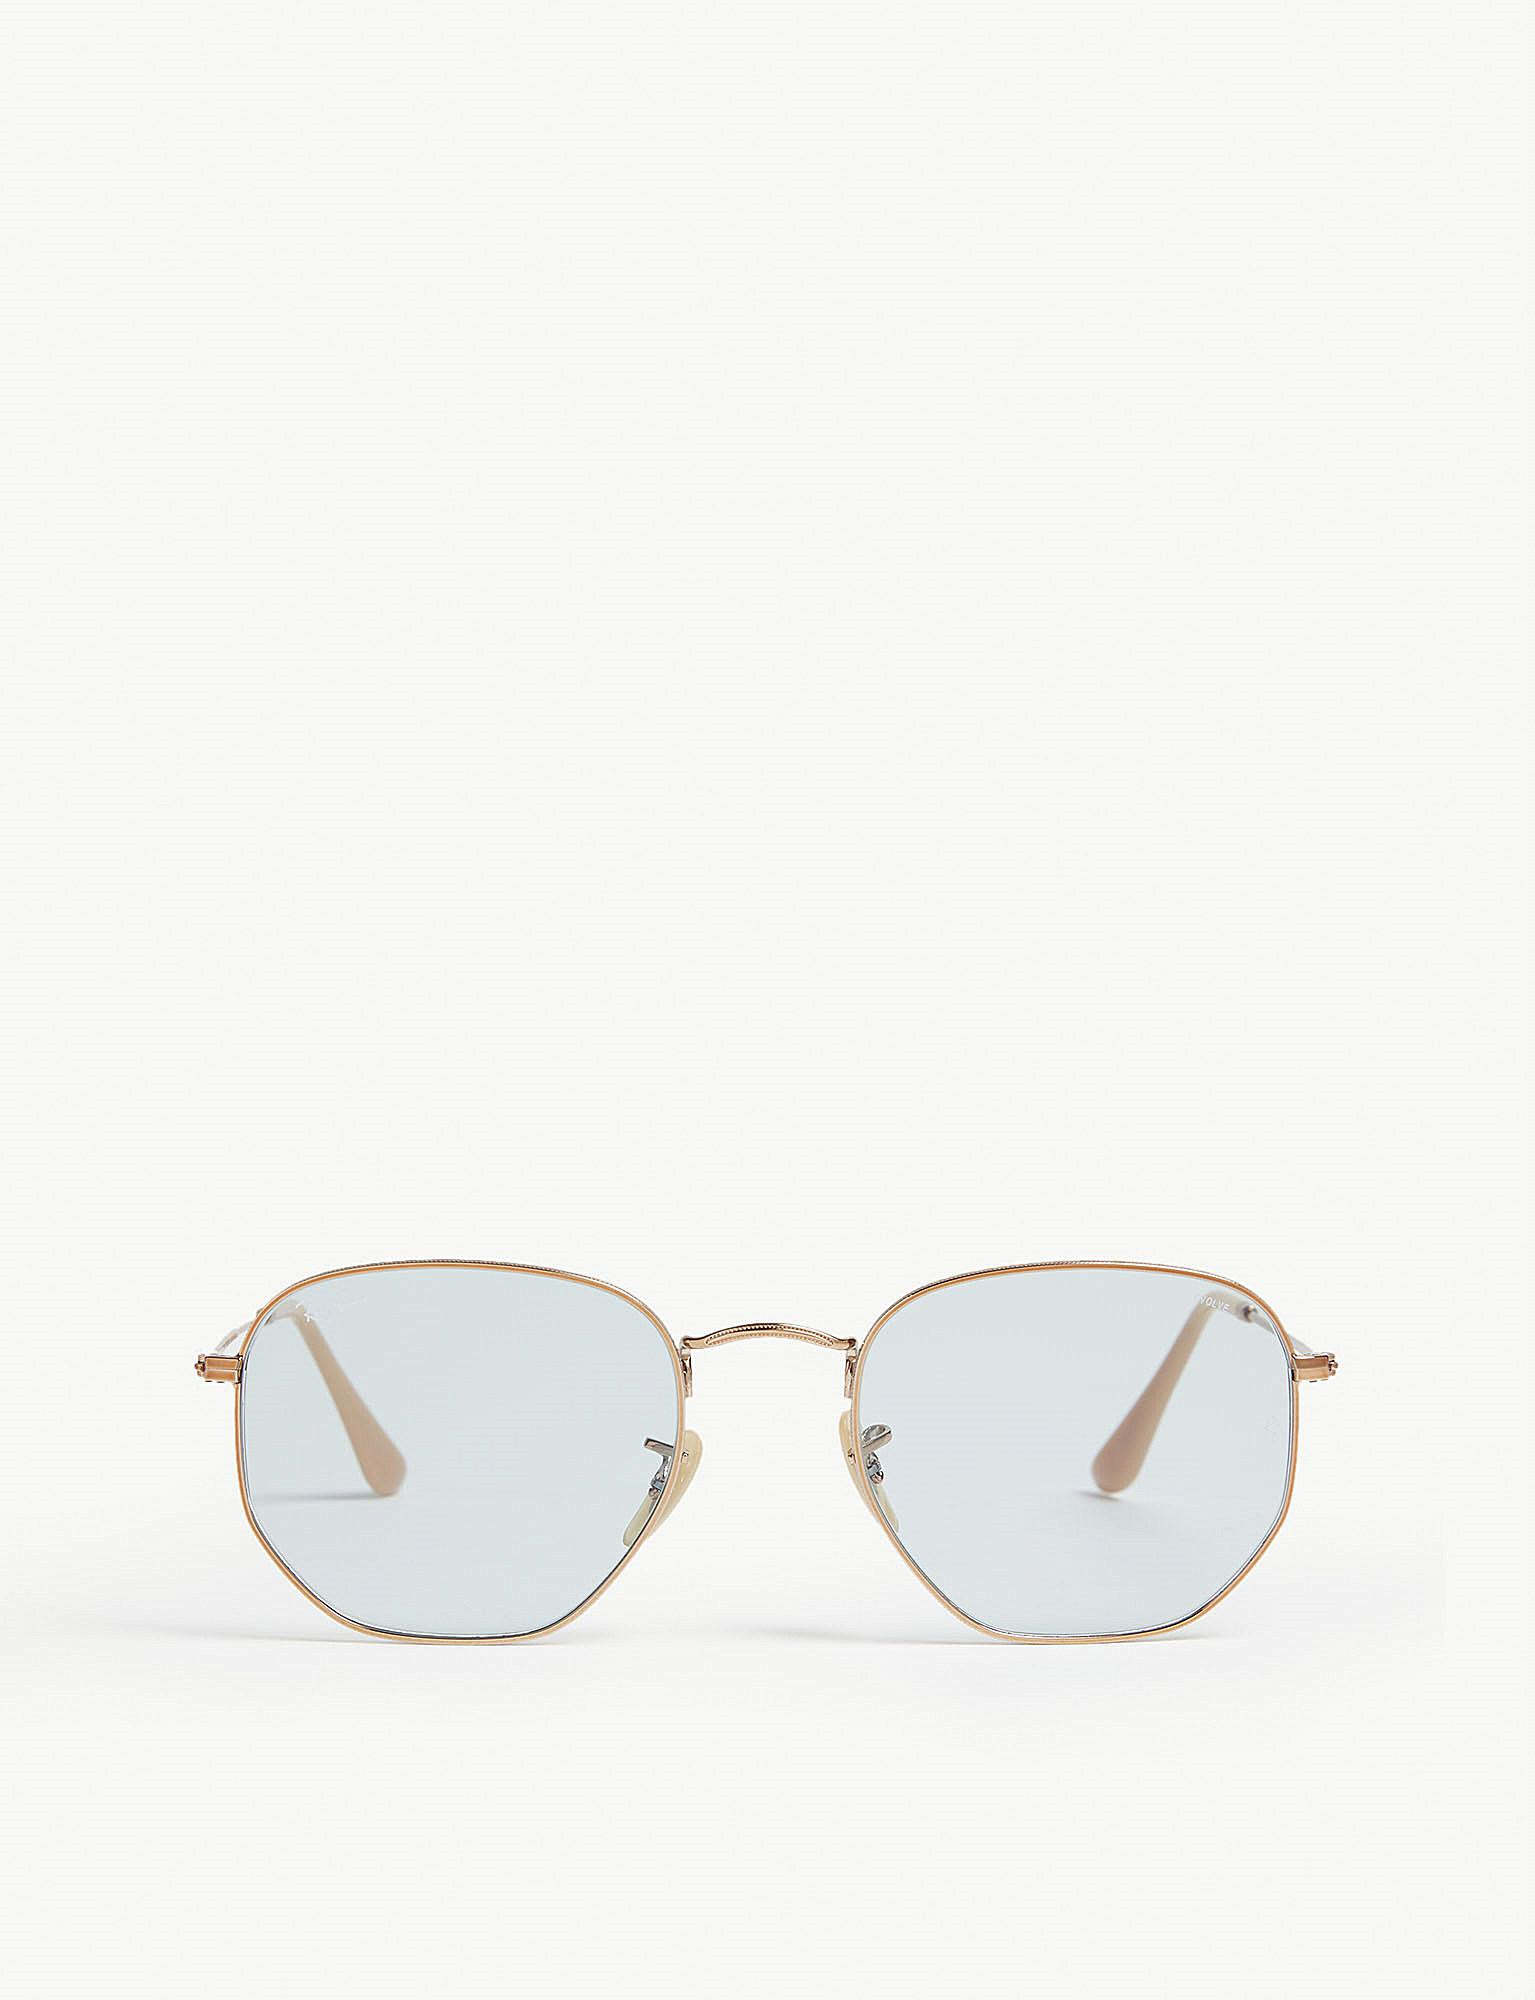 af294f9901 Ray-Ban 0ch5387 Butterfly Sunglasses in Metallic - Lyst